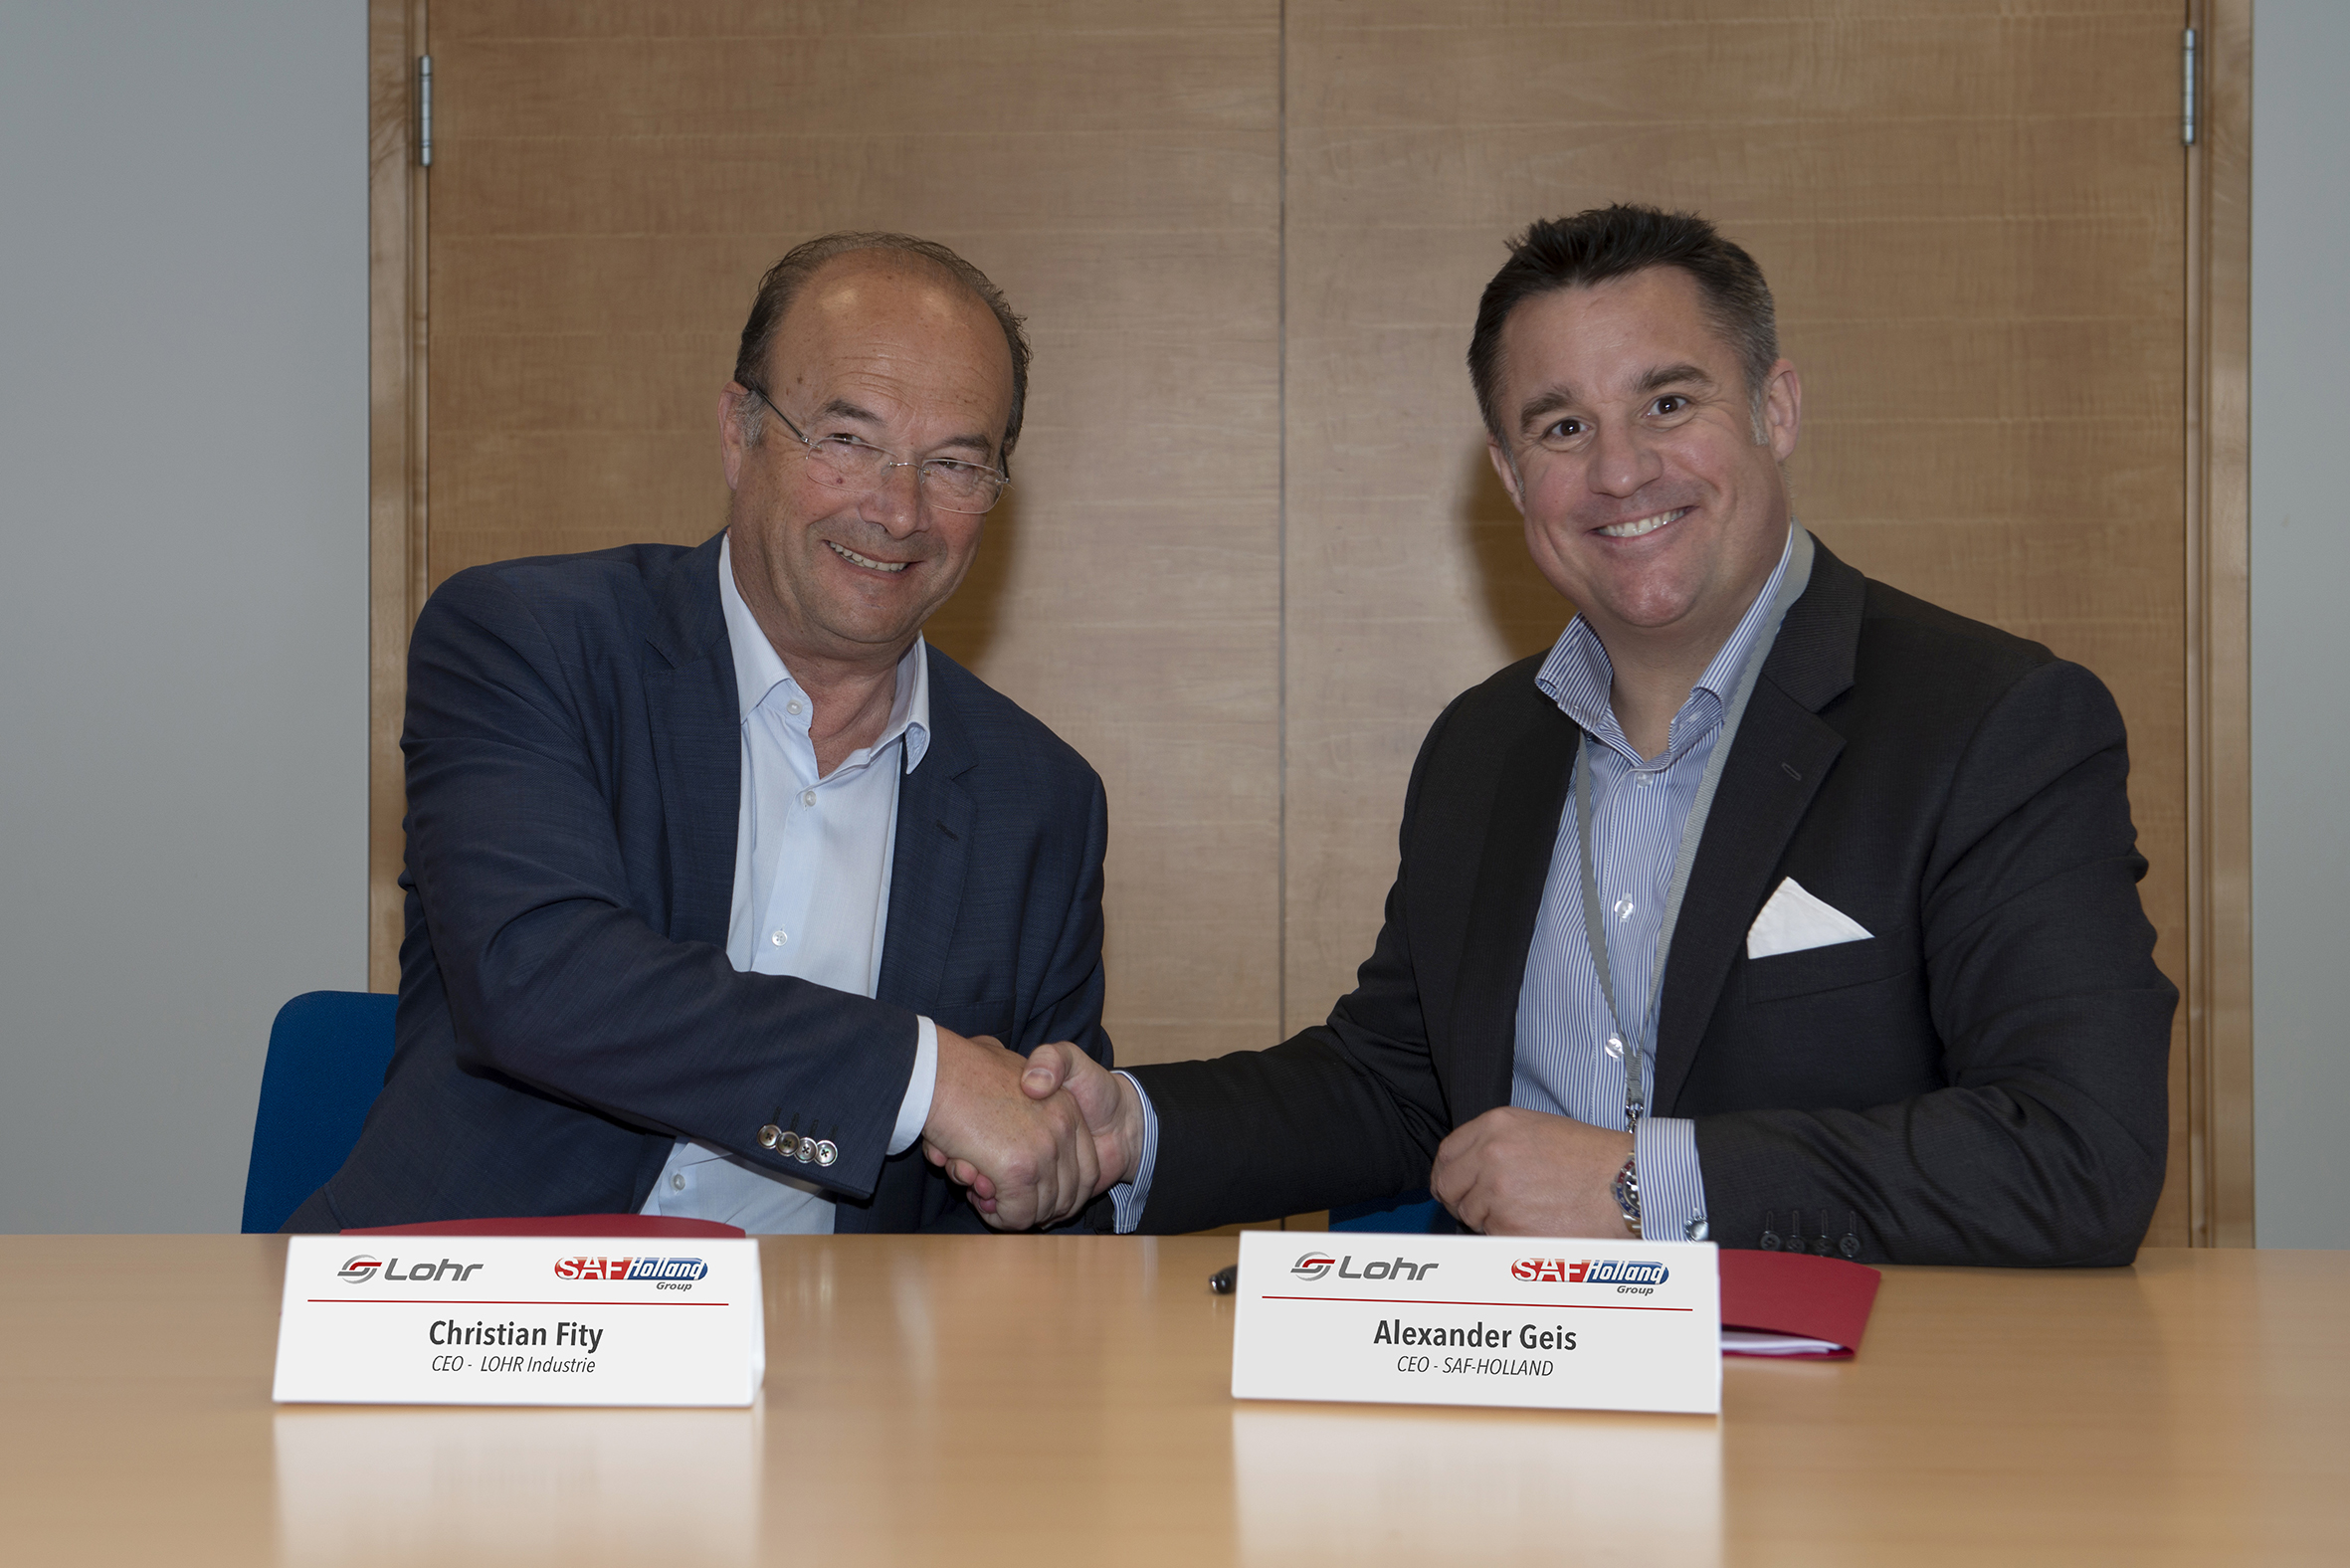 The Managing Directors of the Lohr Group and SAF Holland shake hands after signing a partnership.